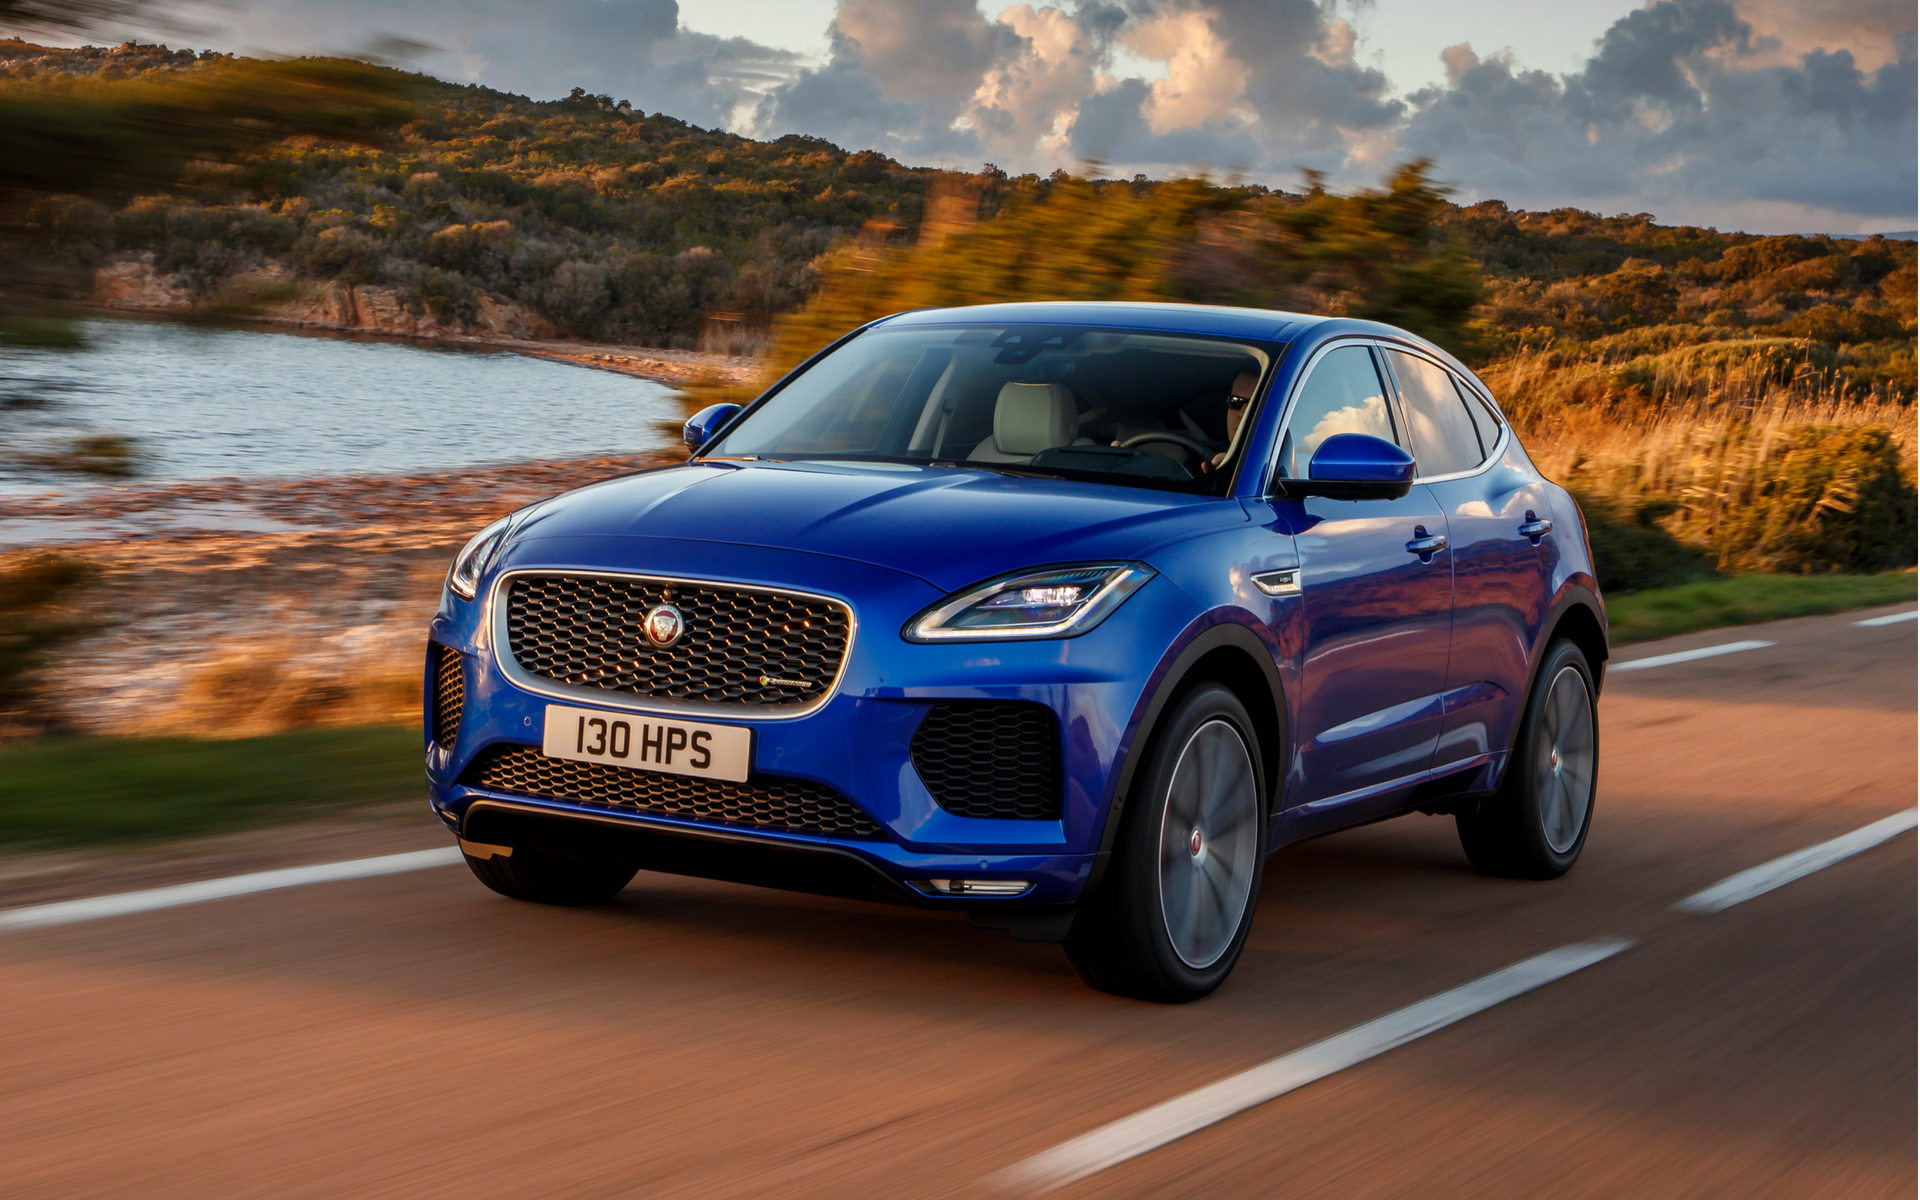 In Pictures: The New Jaguar E-Pace